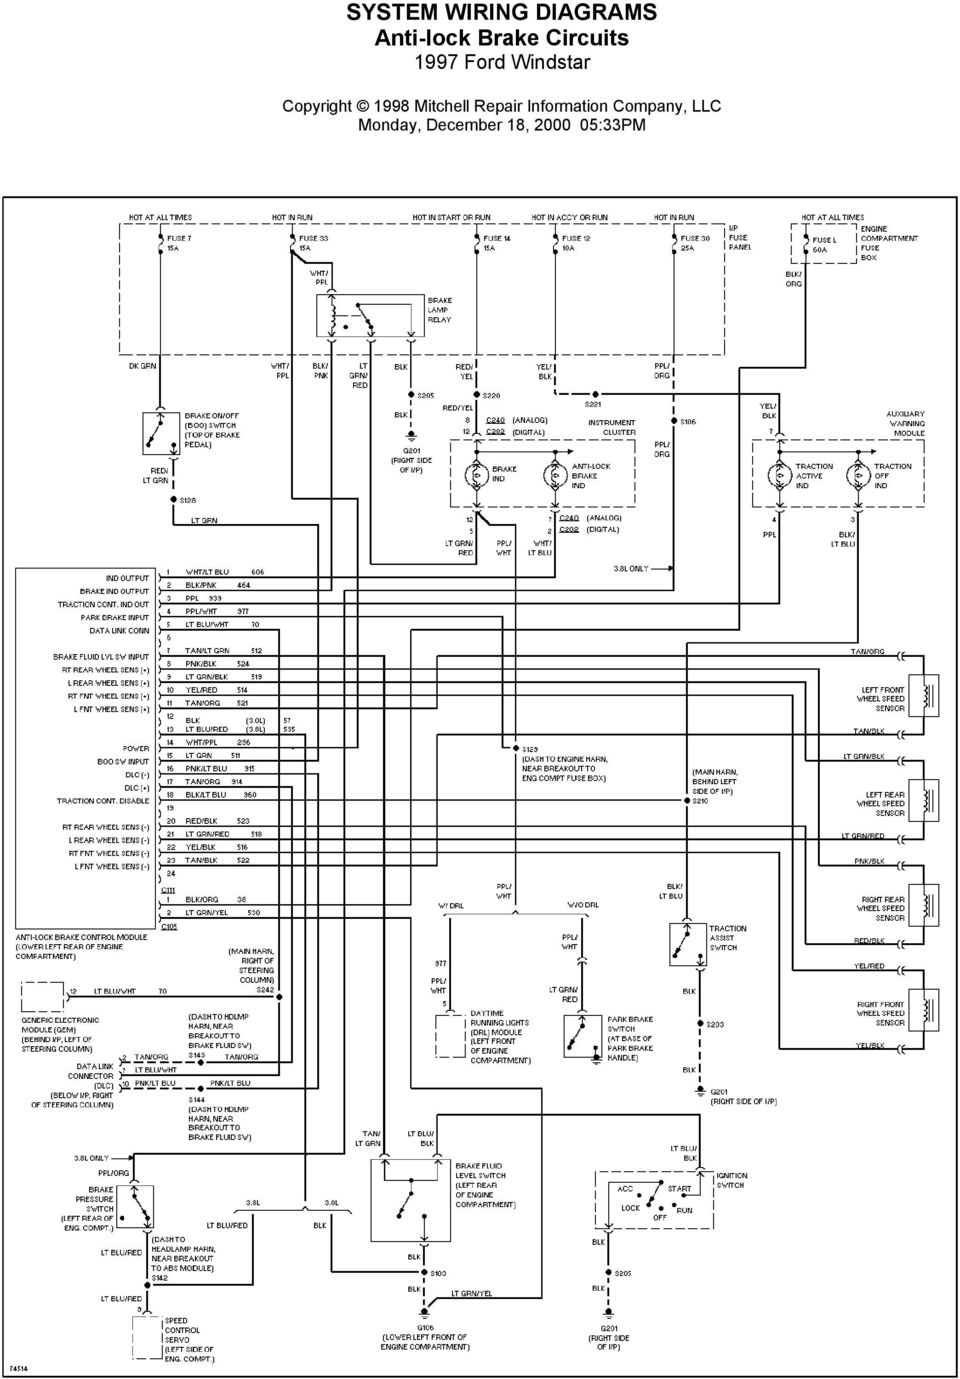 [DIAGRAM] 2001 Ford Windstar Fuel Pump Wiring Diagram FULL